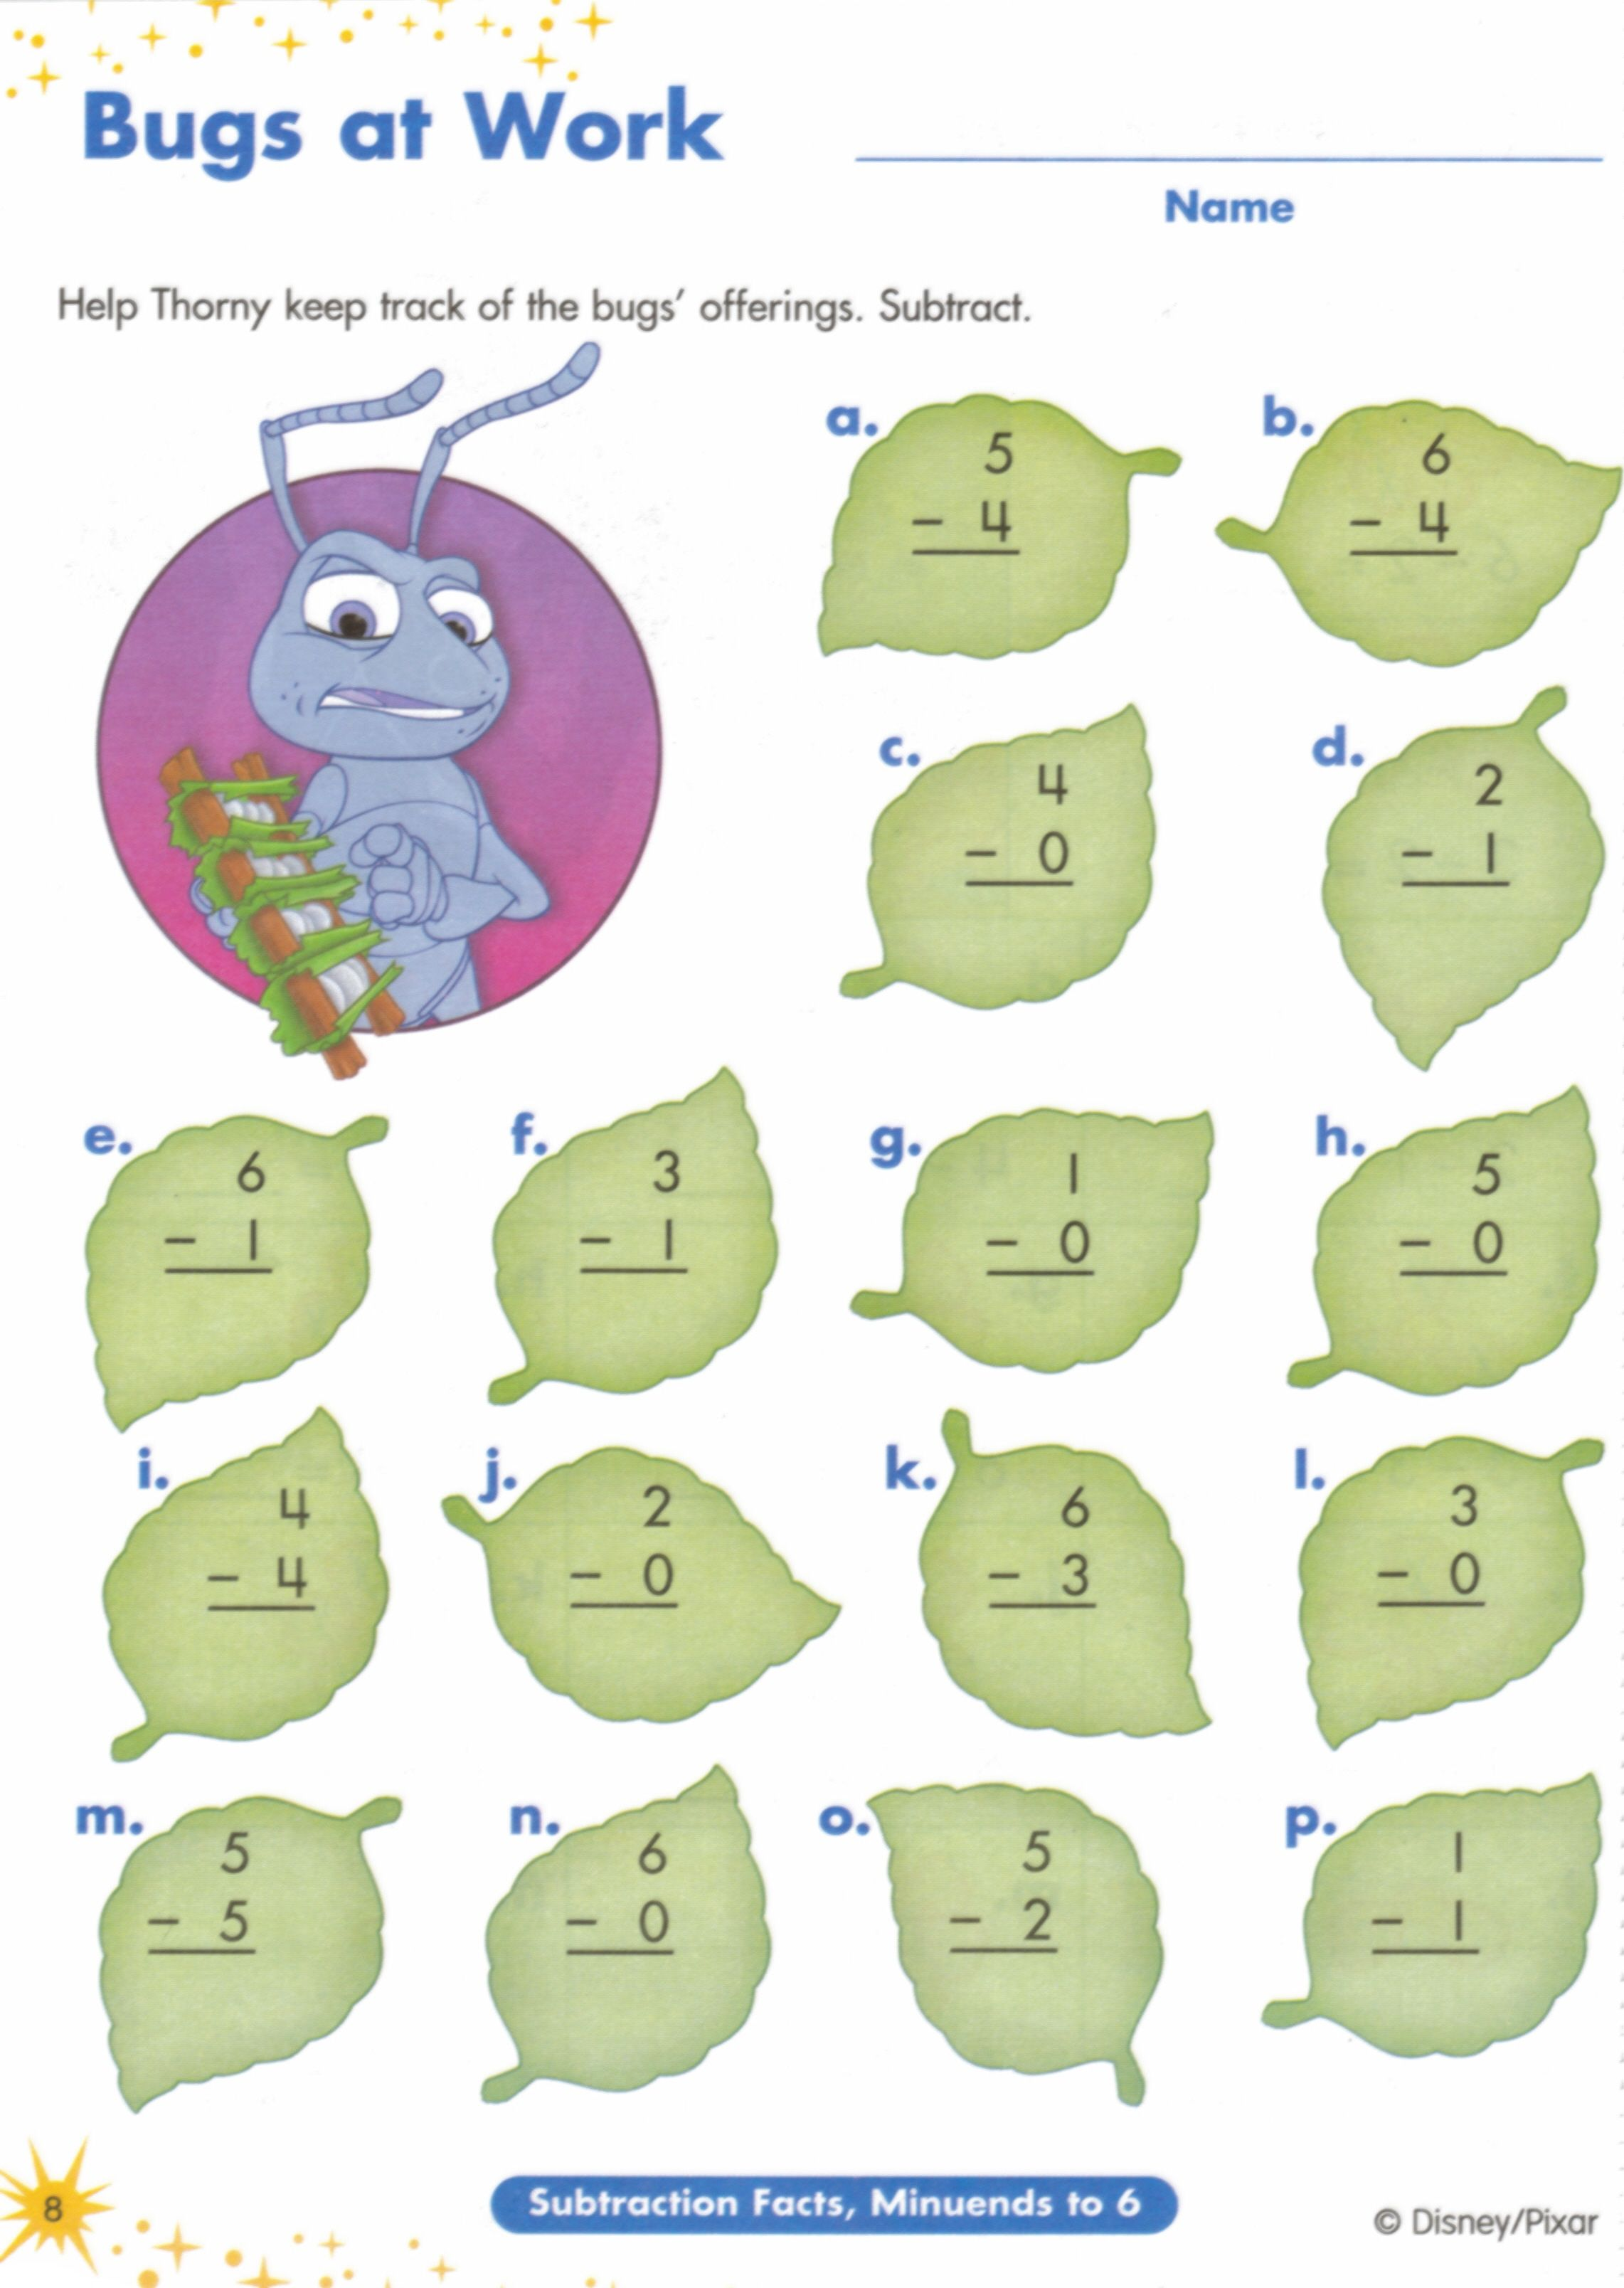 Proatmealus  Surprising  Images About Worksheets On Pinterest  Fun Facts For Kids  With Handsome  Images About Worksheets On Pinterest  Fun Facts For Kids Earth Day Worksheets And Jungles With Delightful Addition Of Money Worksheets Also Teaching Long Division Worksheets In Addition Gcse Maths Revision Worksheets Higher And Fiction And Nonfiction Worksheet As Well As Shapes Worksheet For Kids Additionally Inverse Proportion Worksheet From Pinterestcom With Proatmealus  Handsome  Images About Worksheets On Pinterest  Fun Facts For Kids  With Delightful  Images About Worksheets On Pinterest  Fun Facts For Kids Earth Day Worksheets And Jungles And Surprising Addition Of Money Worksheets Also Teaching Long Division Worksheets In Addition Gcse Maths Revision Worksheets Higher From Pinterestcom